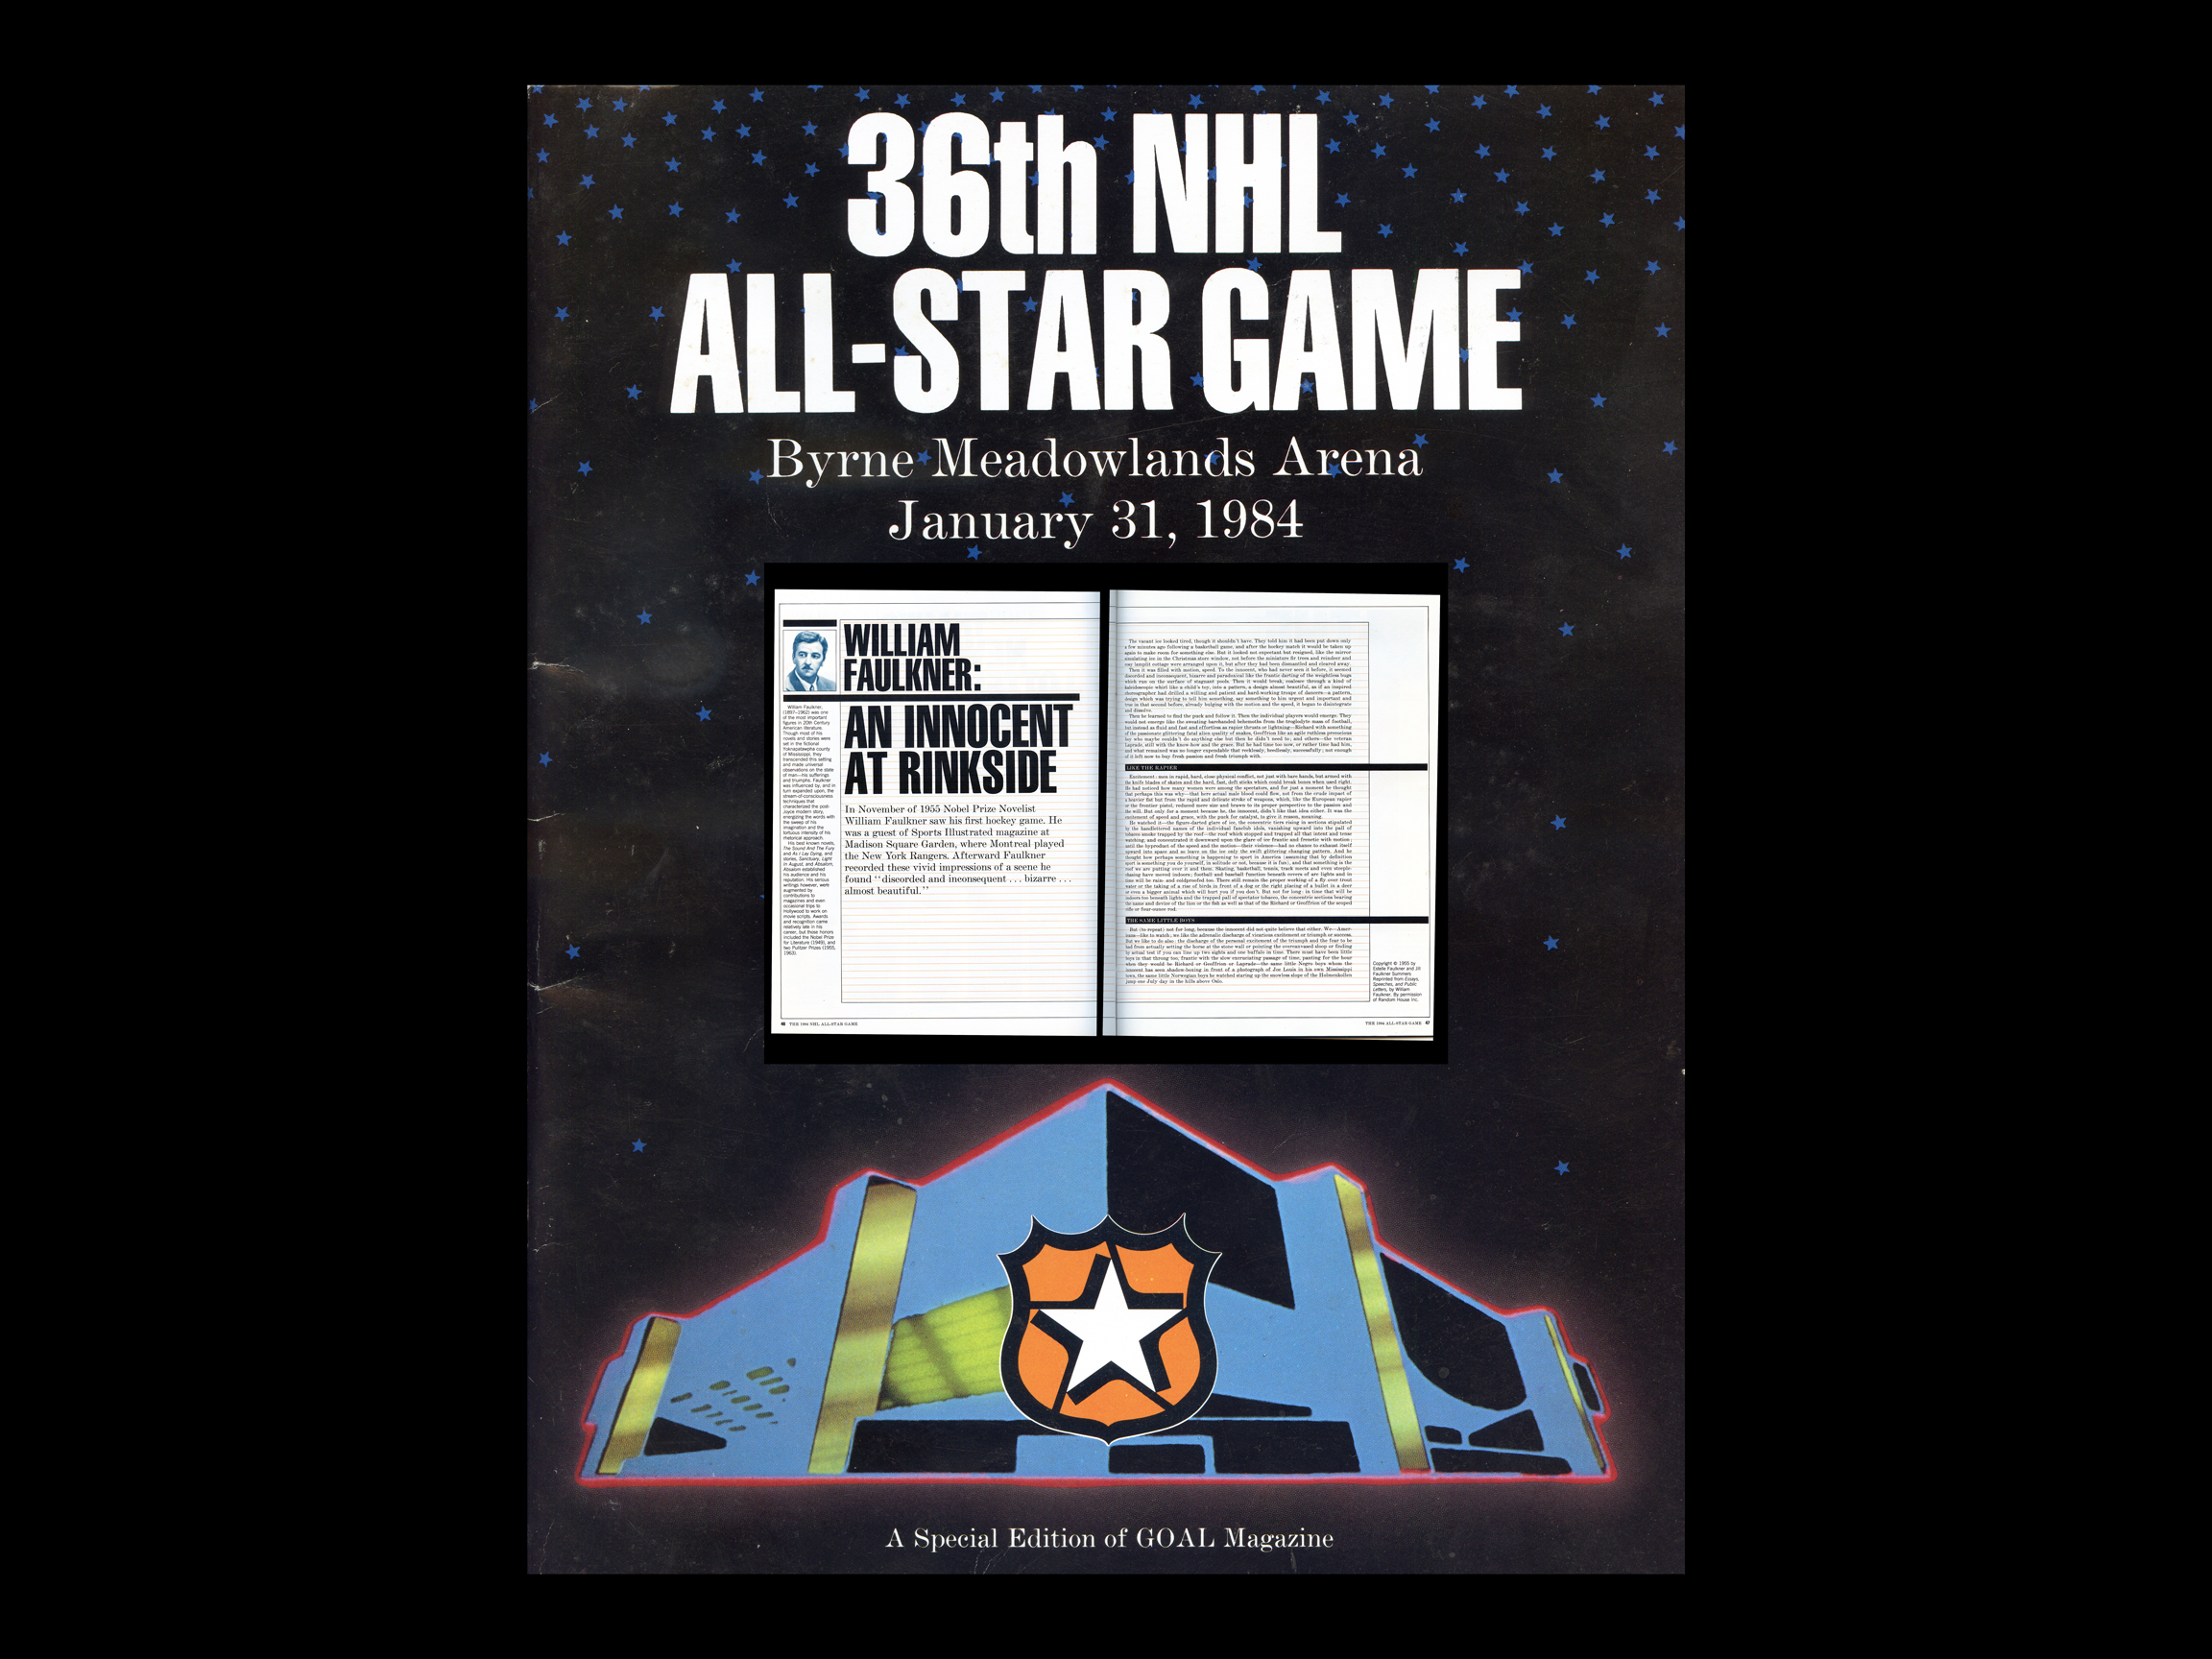 william faulkner essay on ice hockey blog the 36th nhl all star game magazine william faulkner s essay about watching his first